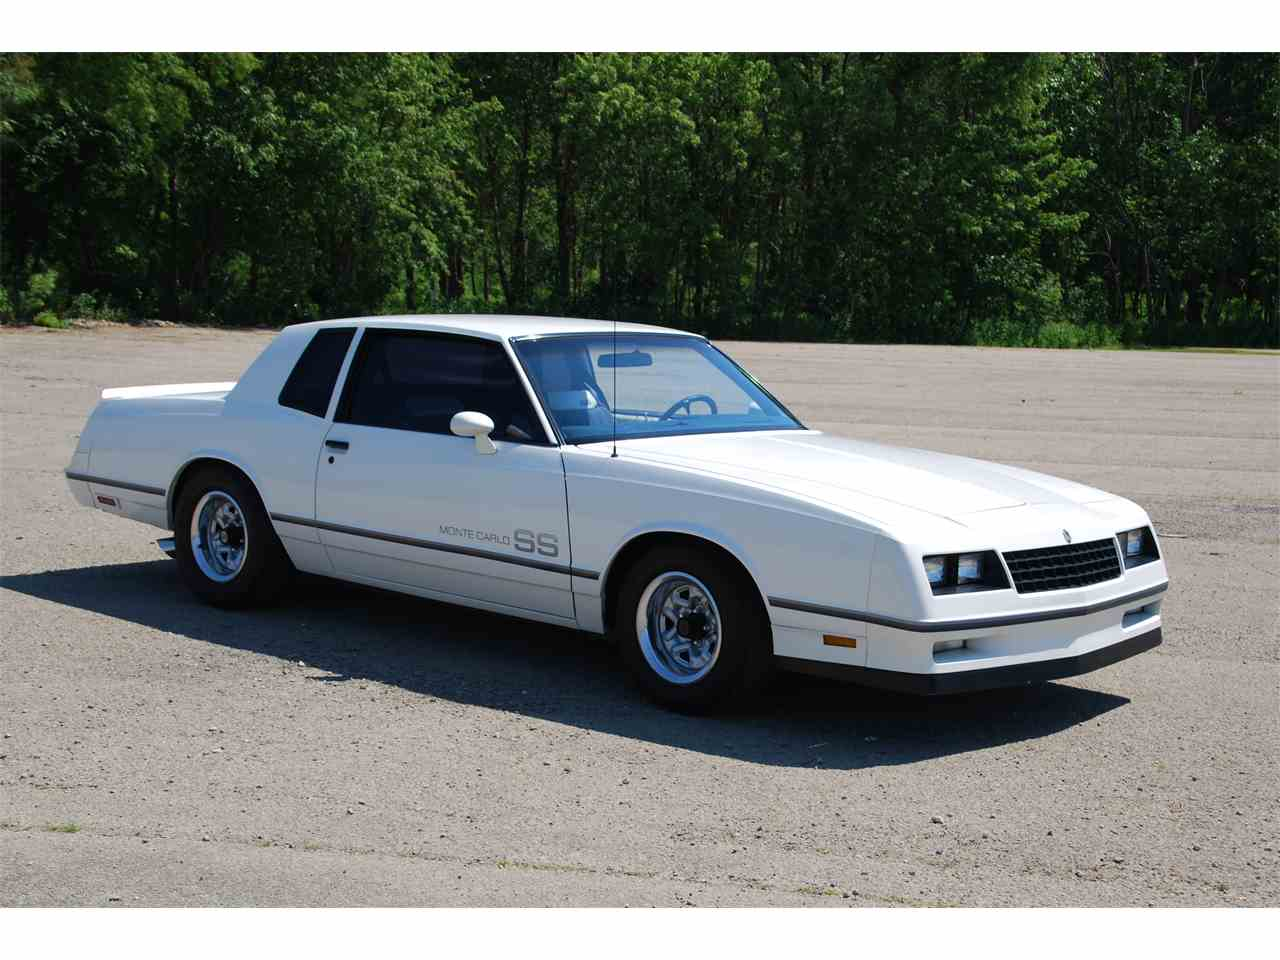 Large Picture of '83 Monte Carlo SS located in Illinois - $10,500.00 Offered by Uftring Auto Group - LVHX